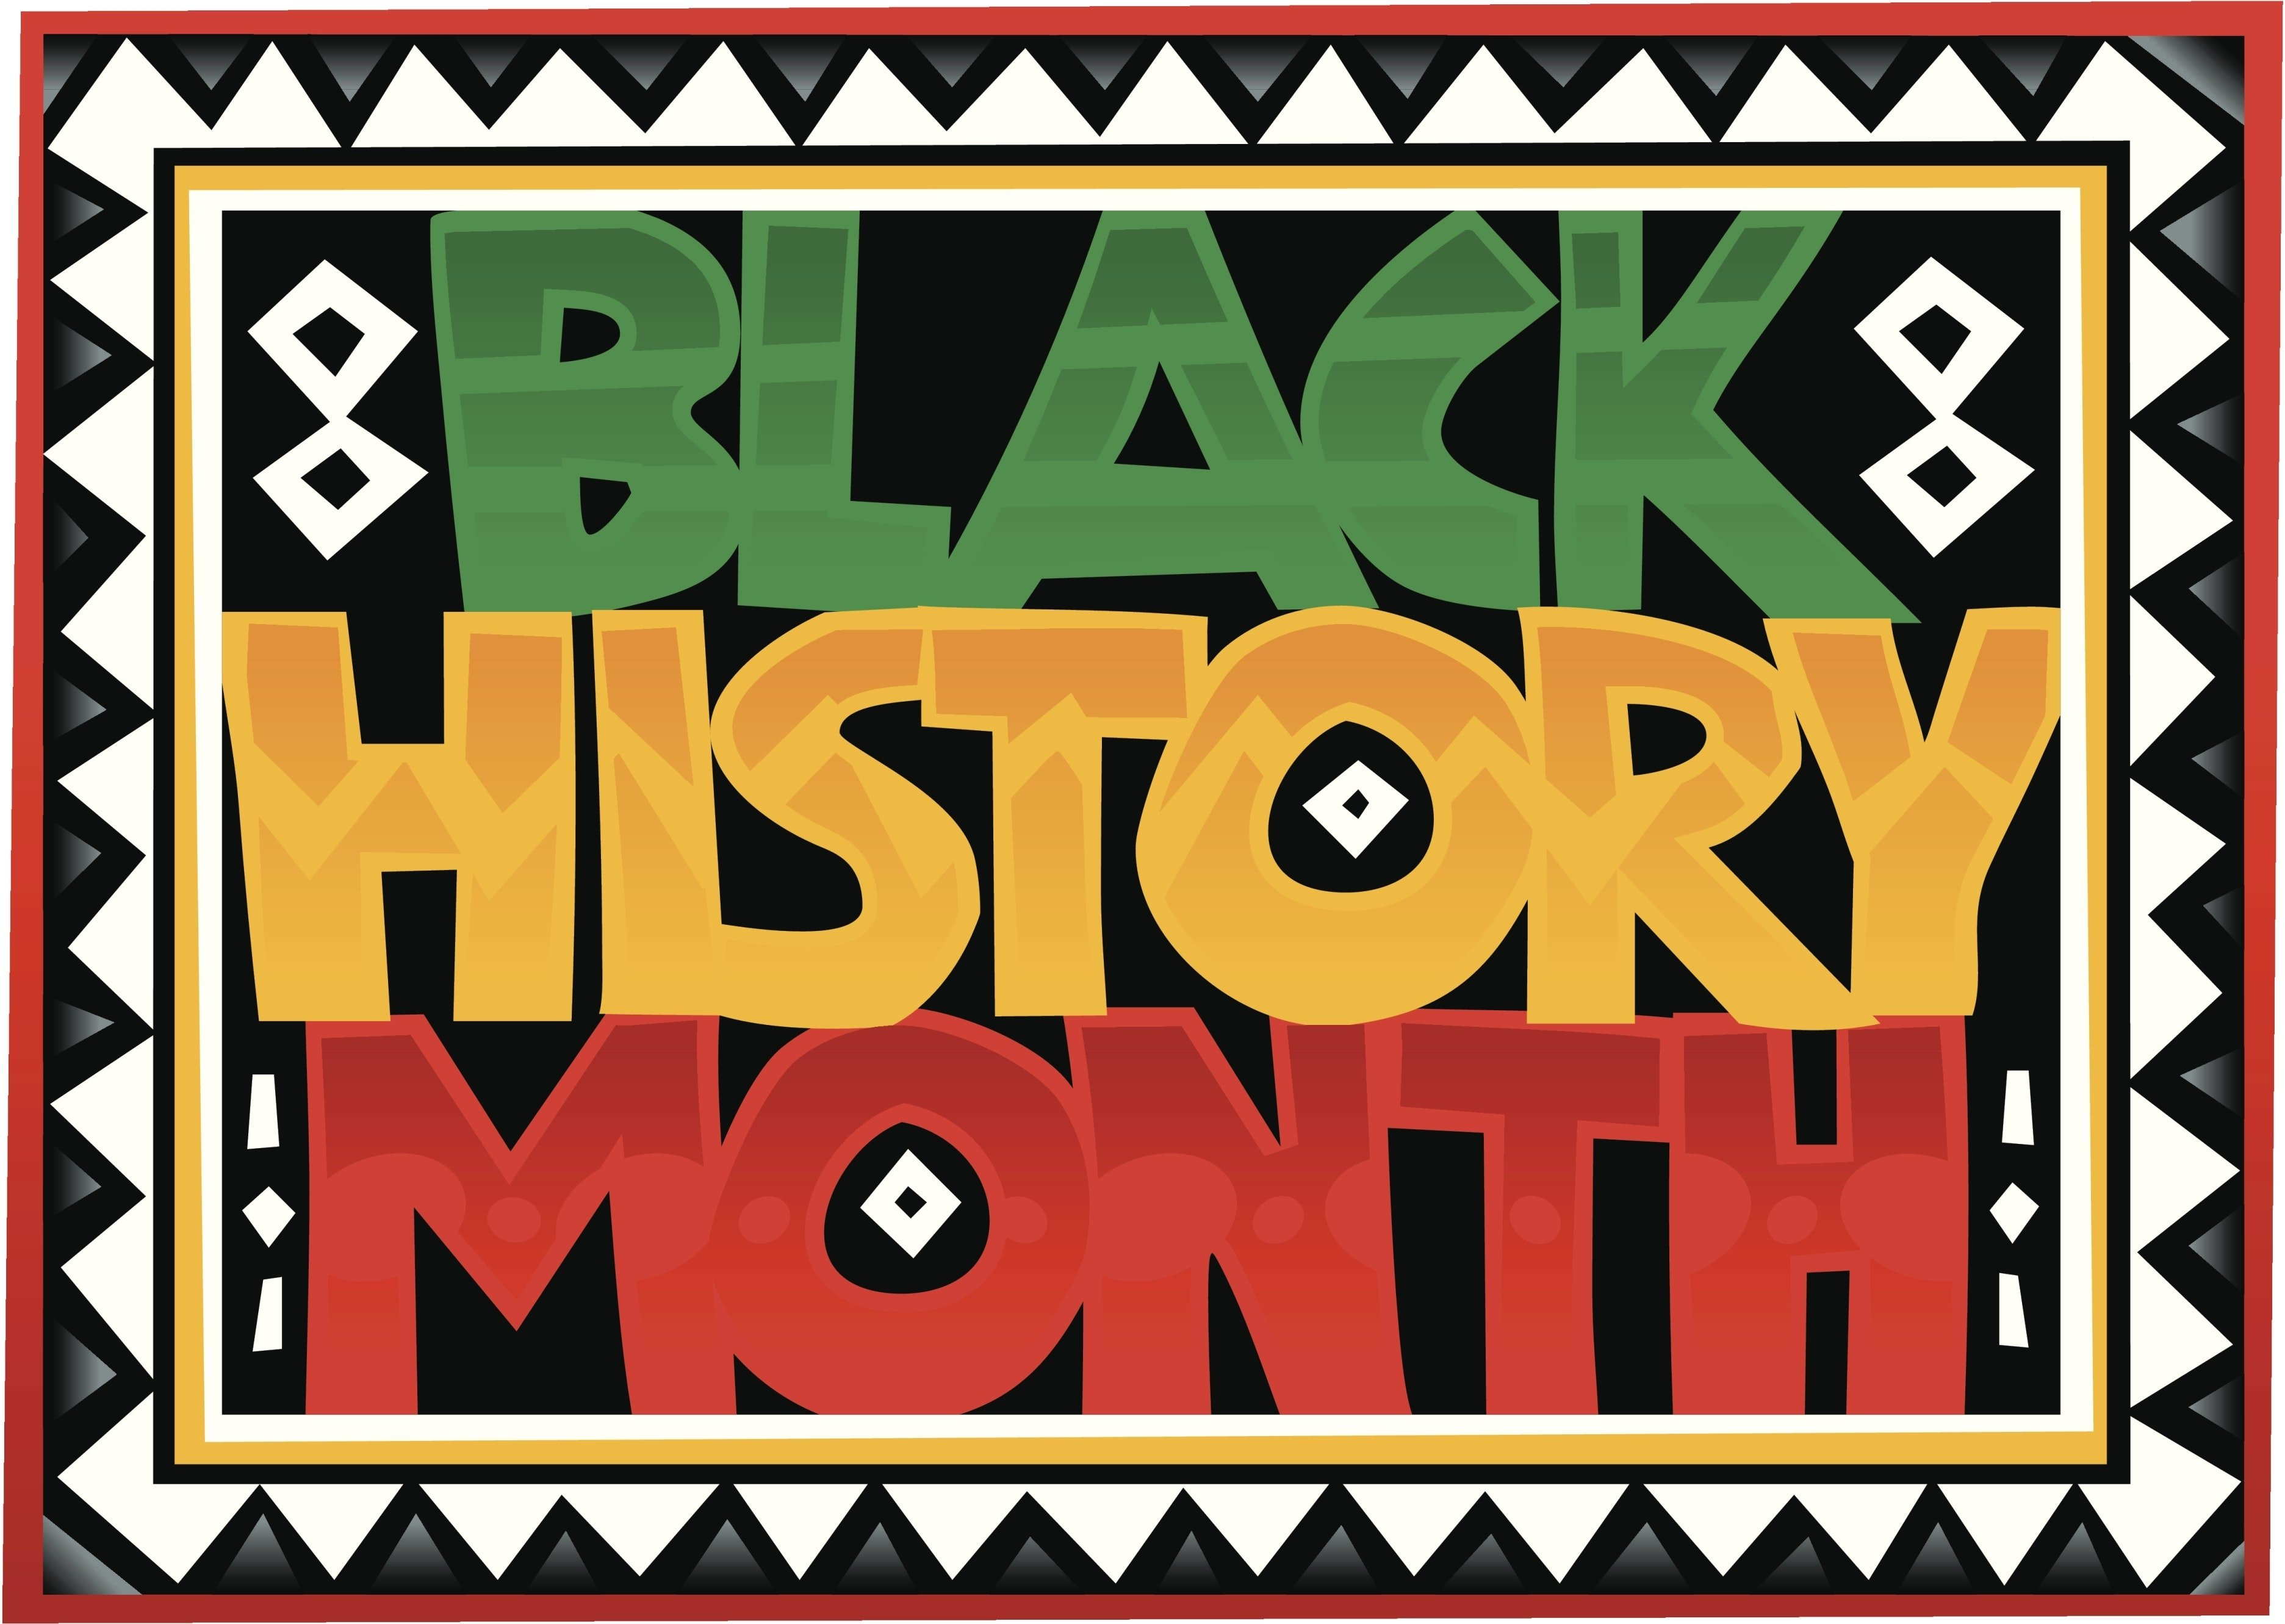 10 Fantastic Ideas For Black History Month marvelous black history month posters 2017 and awesome ideas of 2021